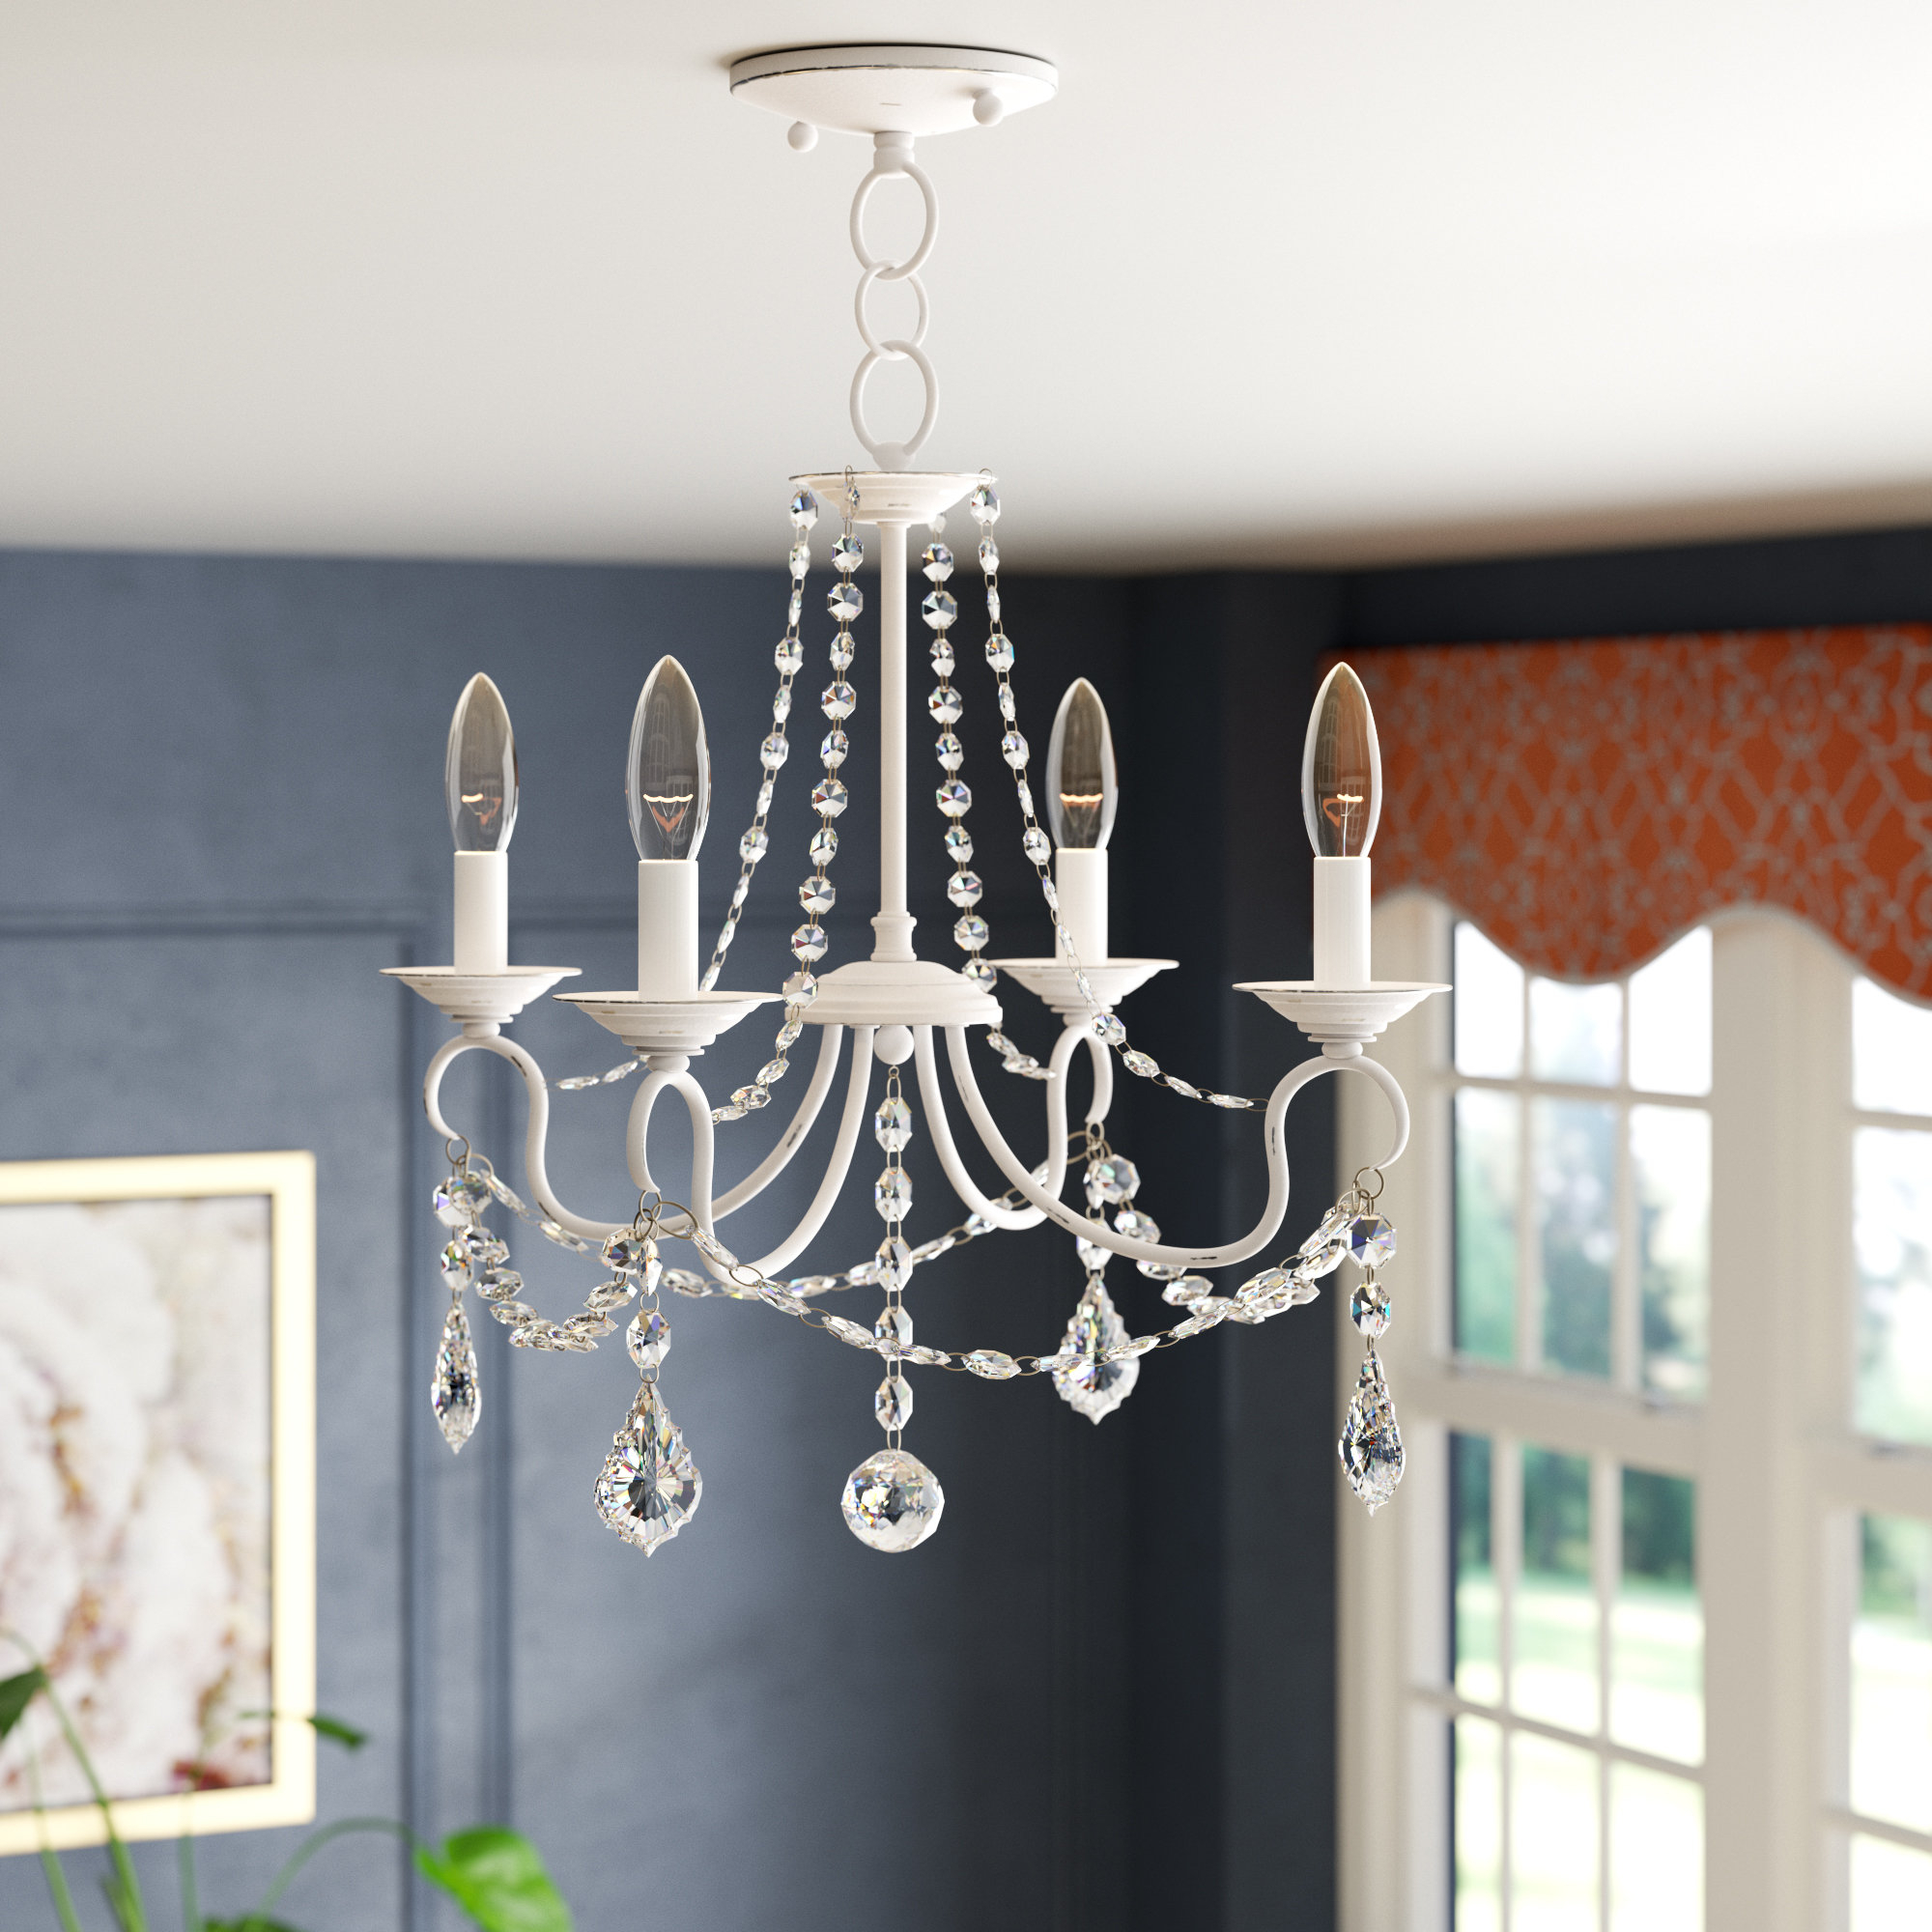 Aldora 4 Light Candle Style Chandeliers For Most Current Devana 4 Light Candle Style Chandelier (View 6 of 20)